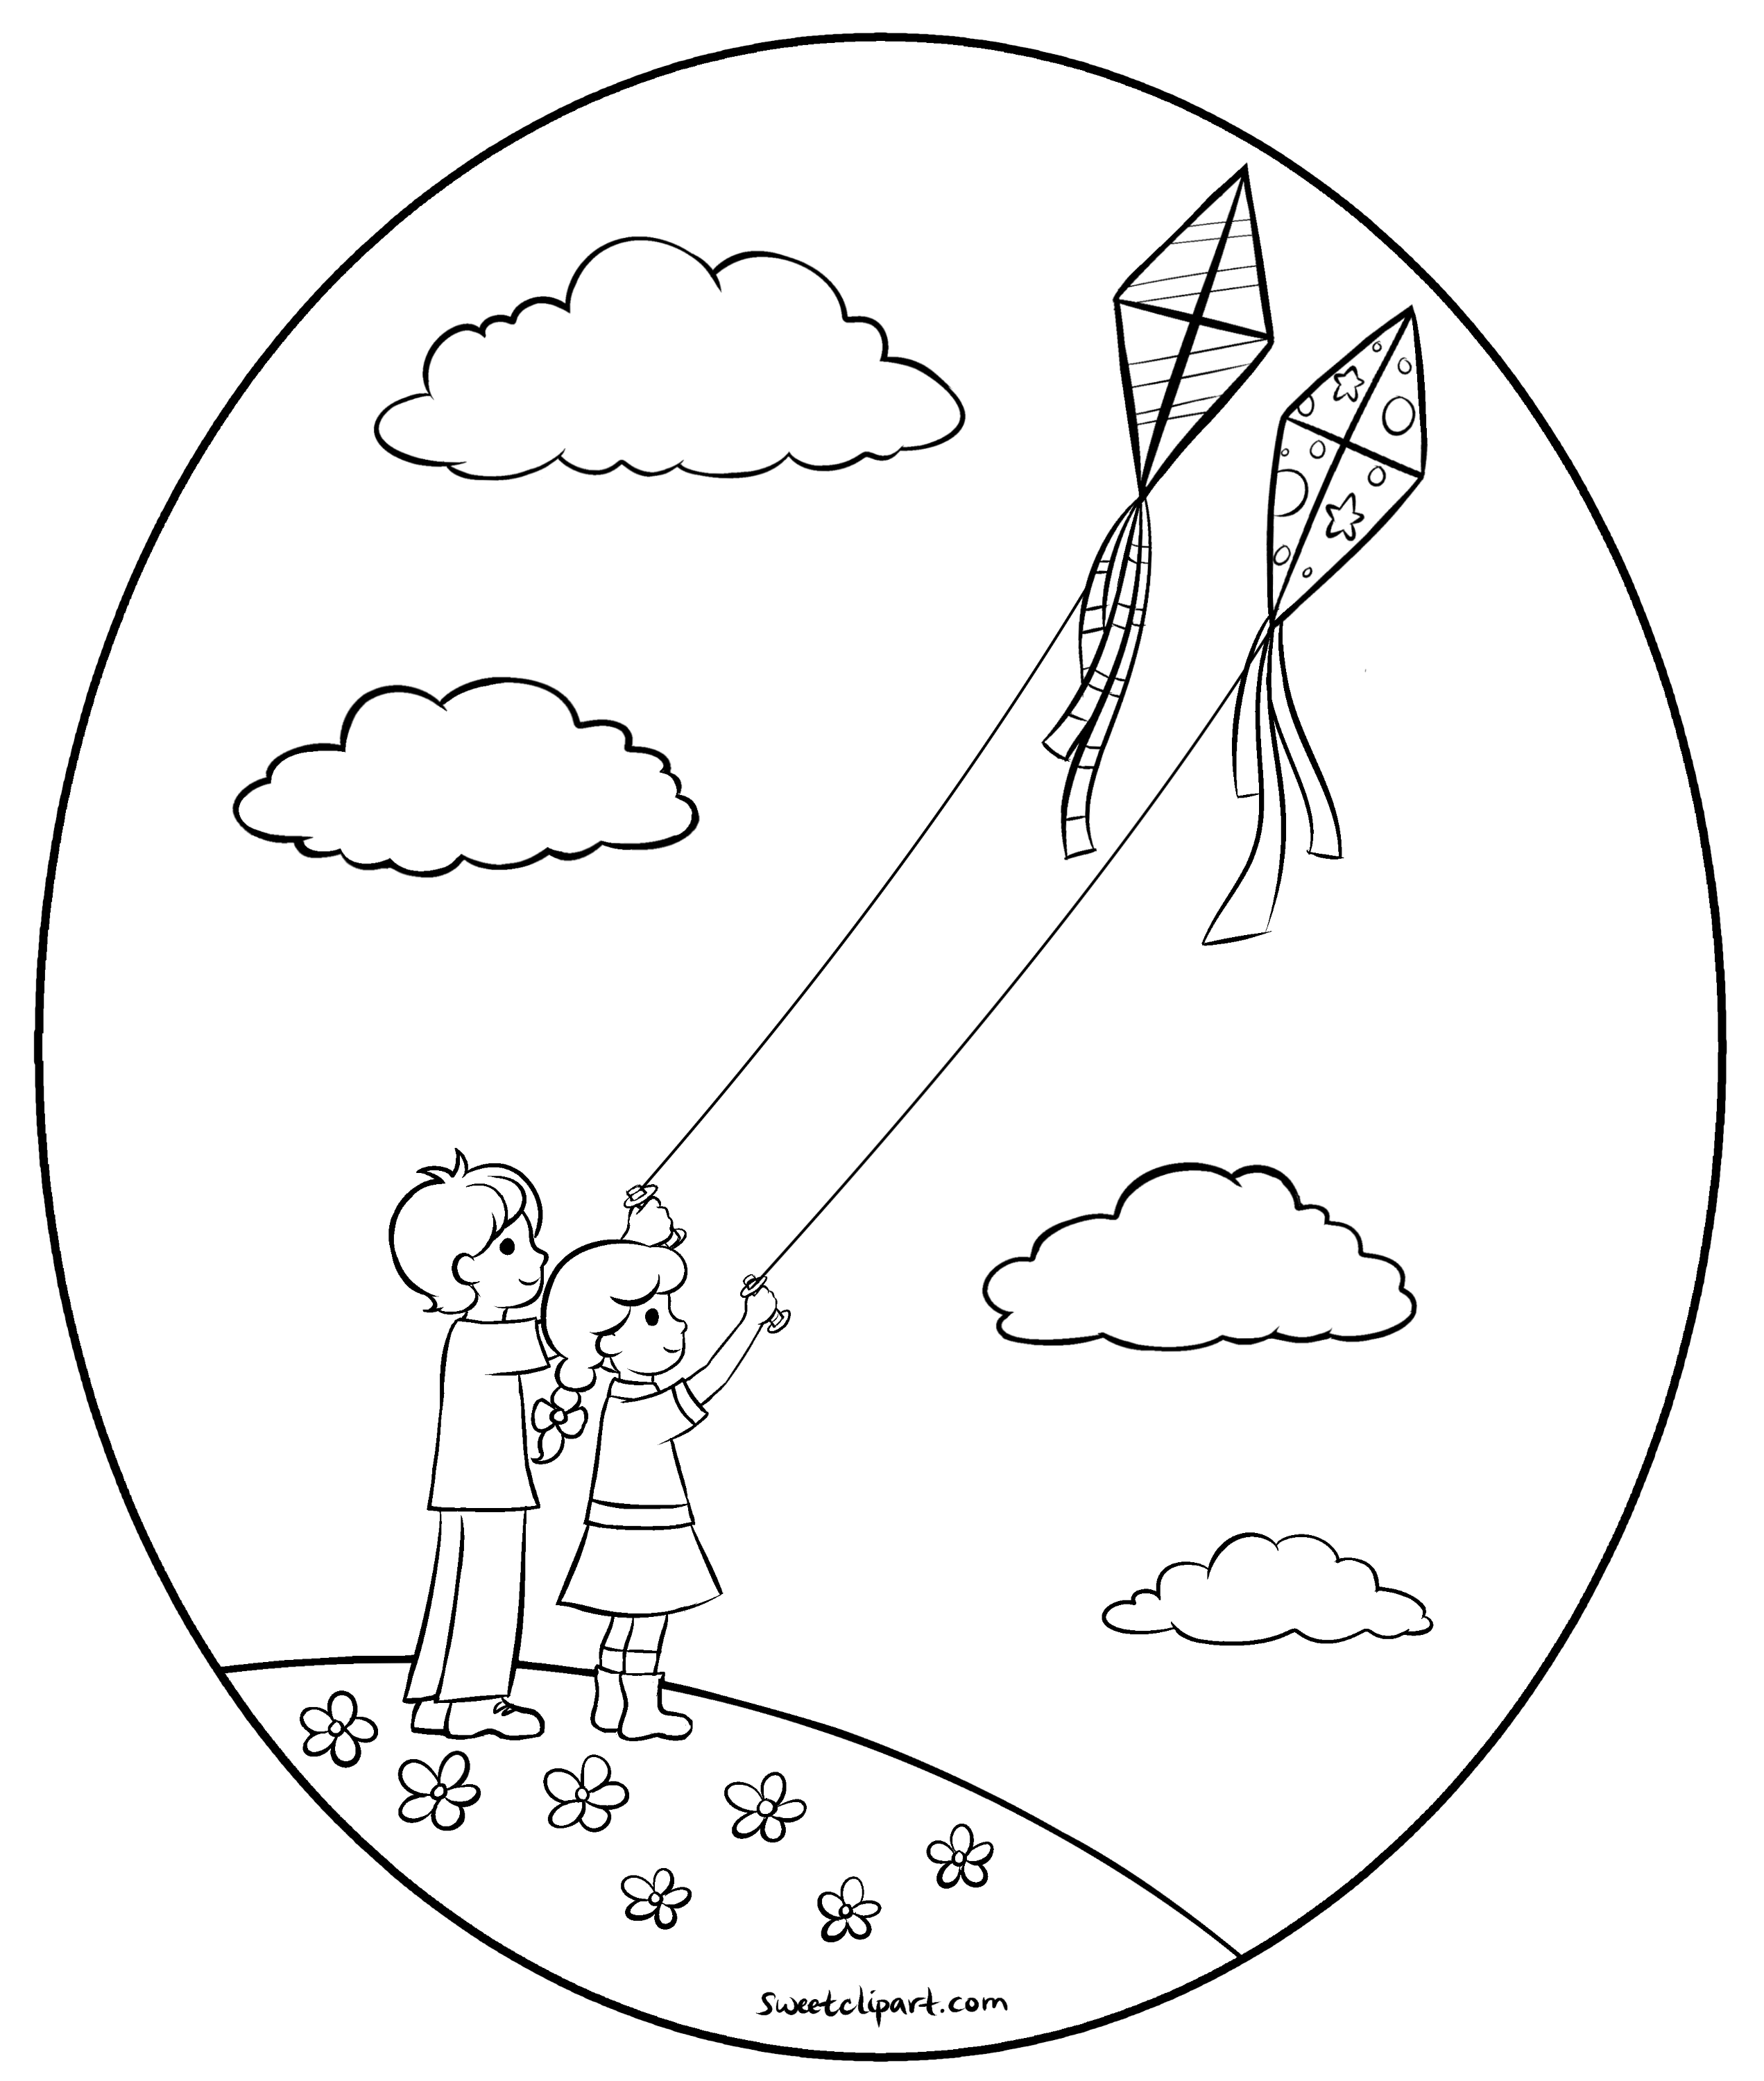 flying kites coloring page - Kite Coloring Page